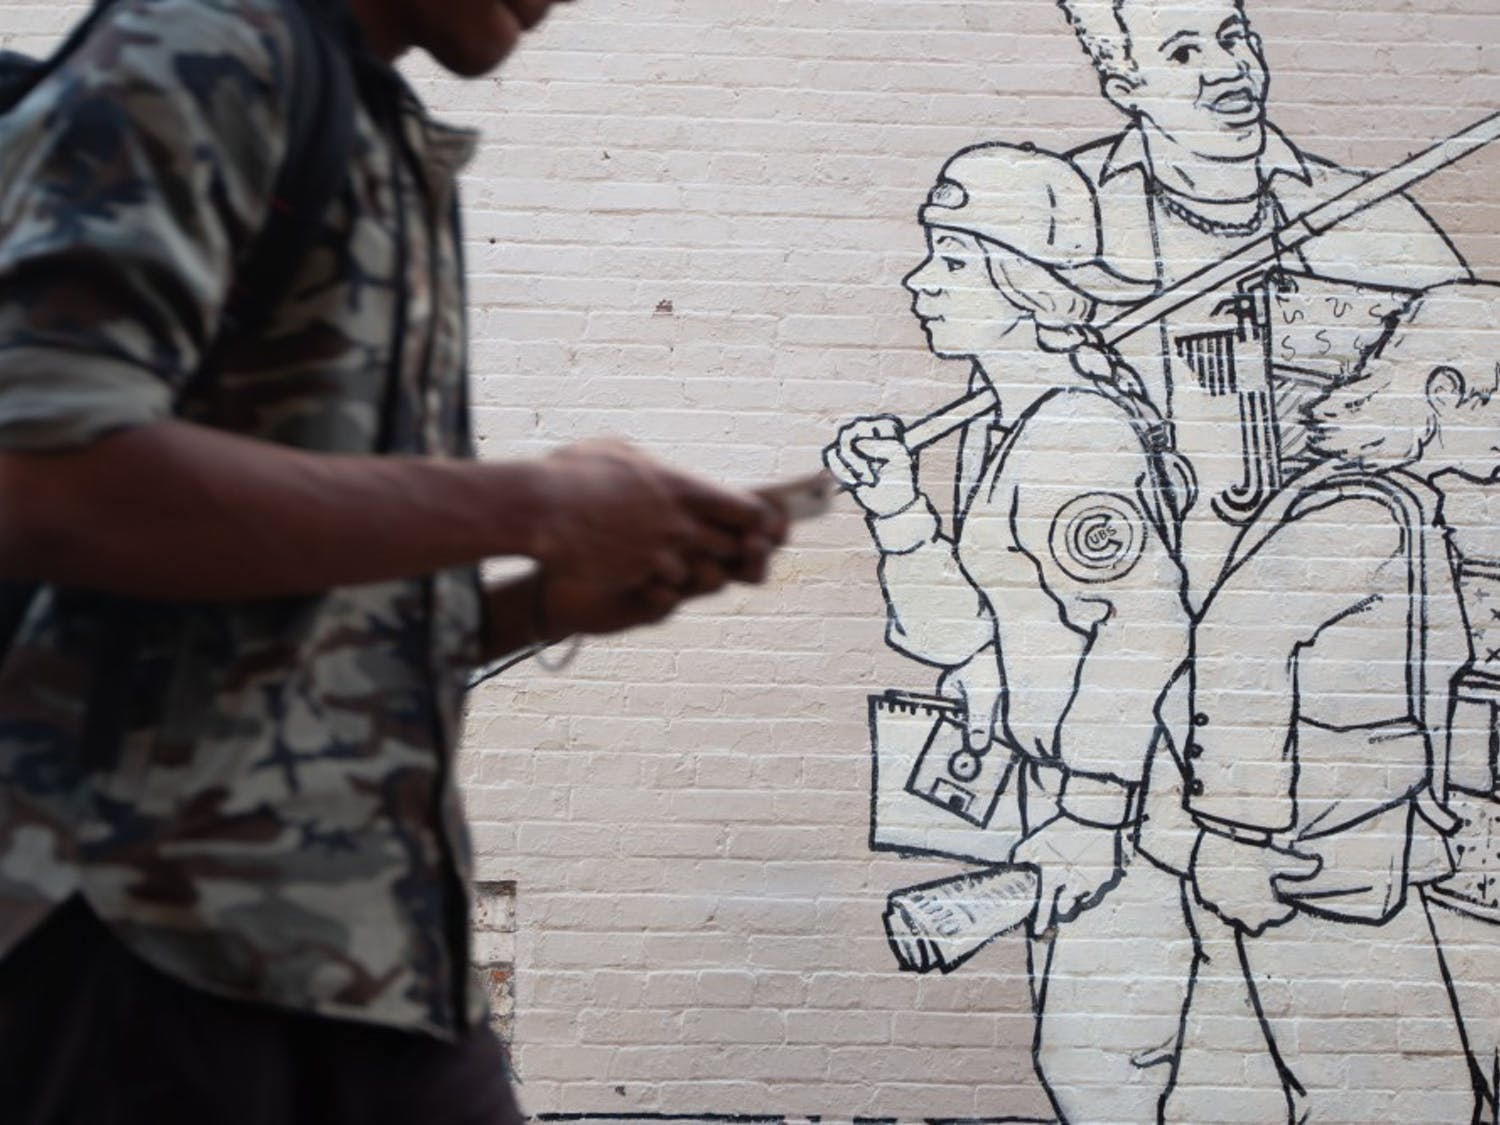 """A student passes by a mural outside of Carolina Coffee Shop on Tuesday, Feb. 5, 2019. The mural, titled """"Parade of Humanity"""" and created by Michael Brown, was restored in 2008 and stands as one of several pieces of public art in Chapel Hill."""